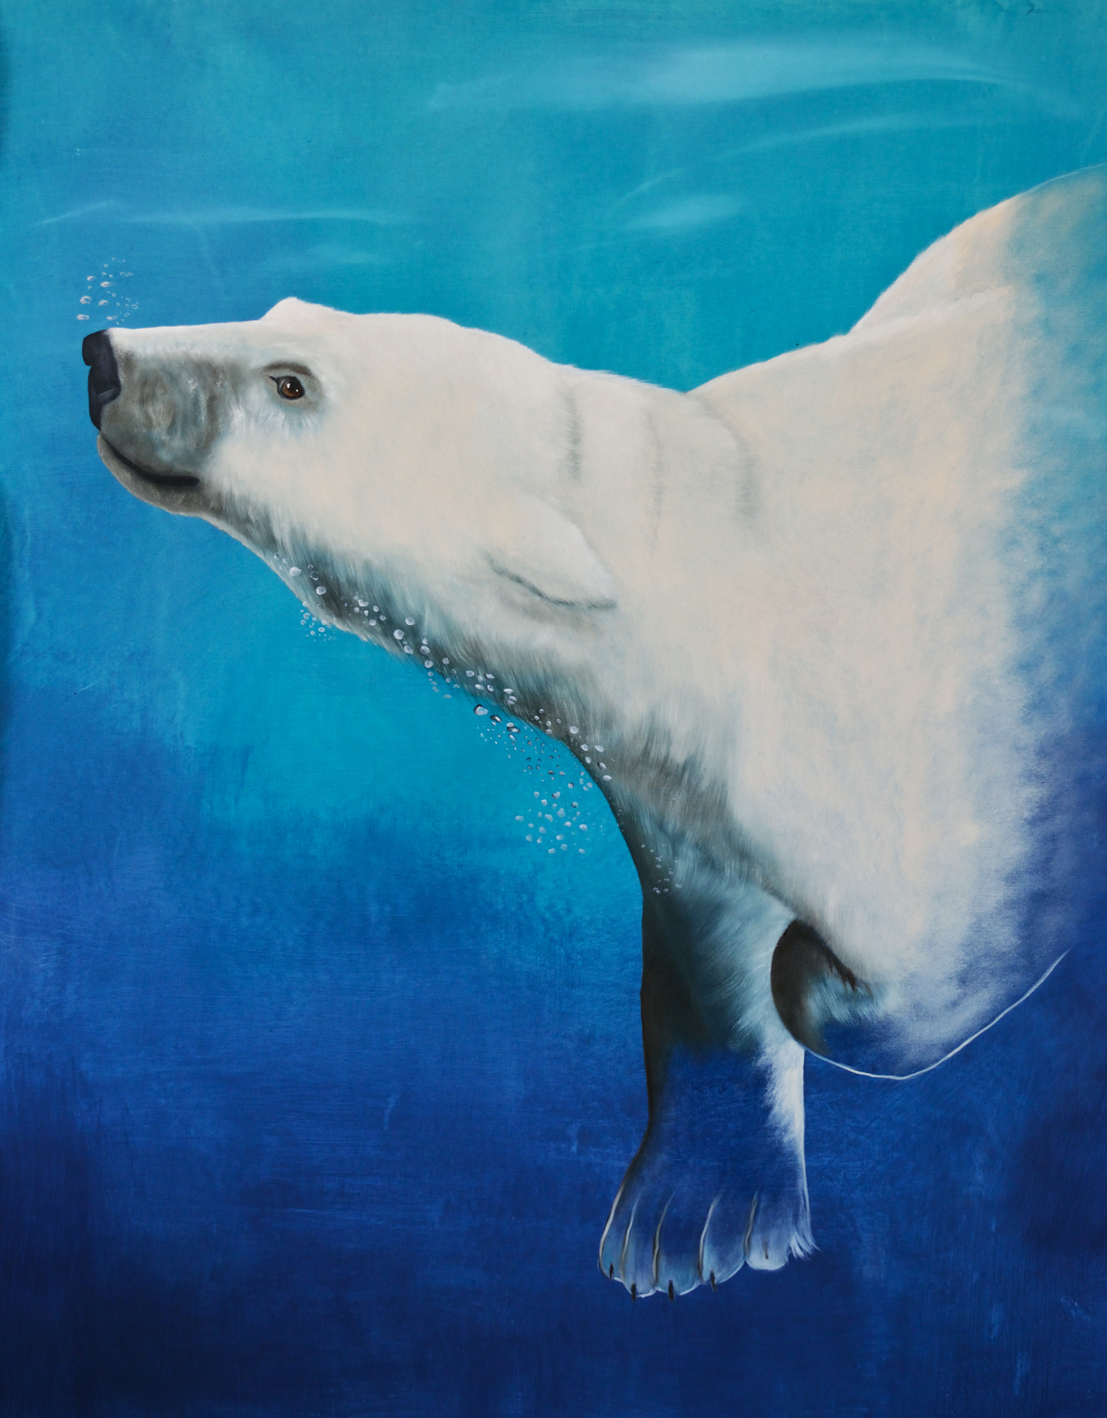 URSUS-MARITIMUS--4 divers Thierry Bisch painter animals painting art decoration hotel design interior luxury nature biodiversity conservation